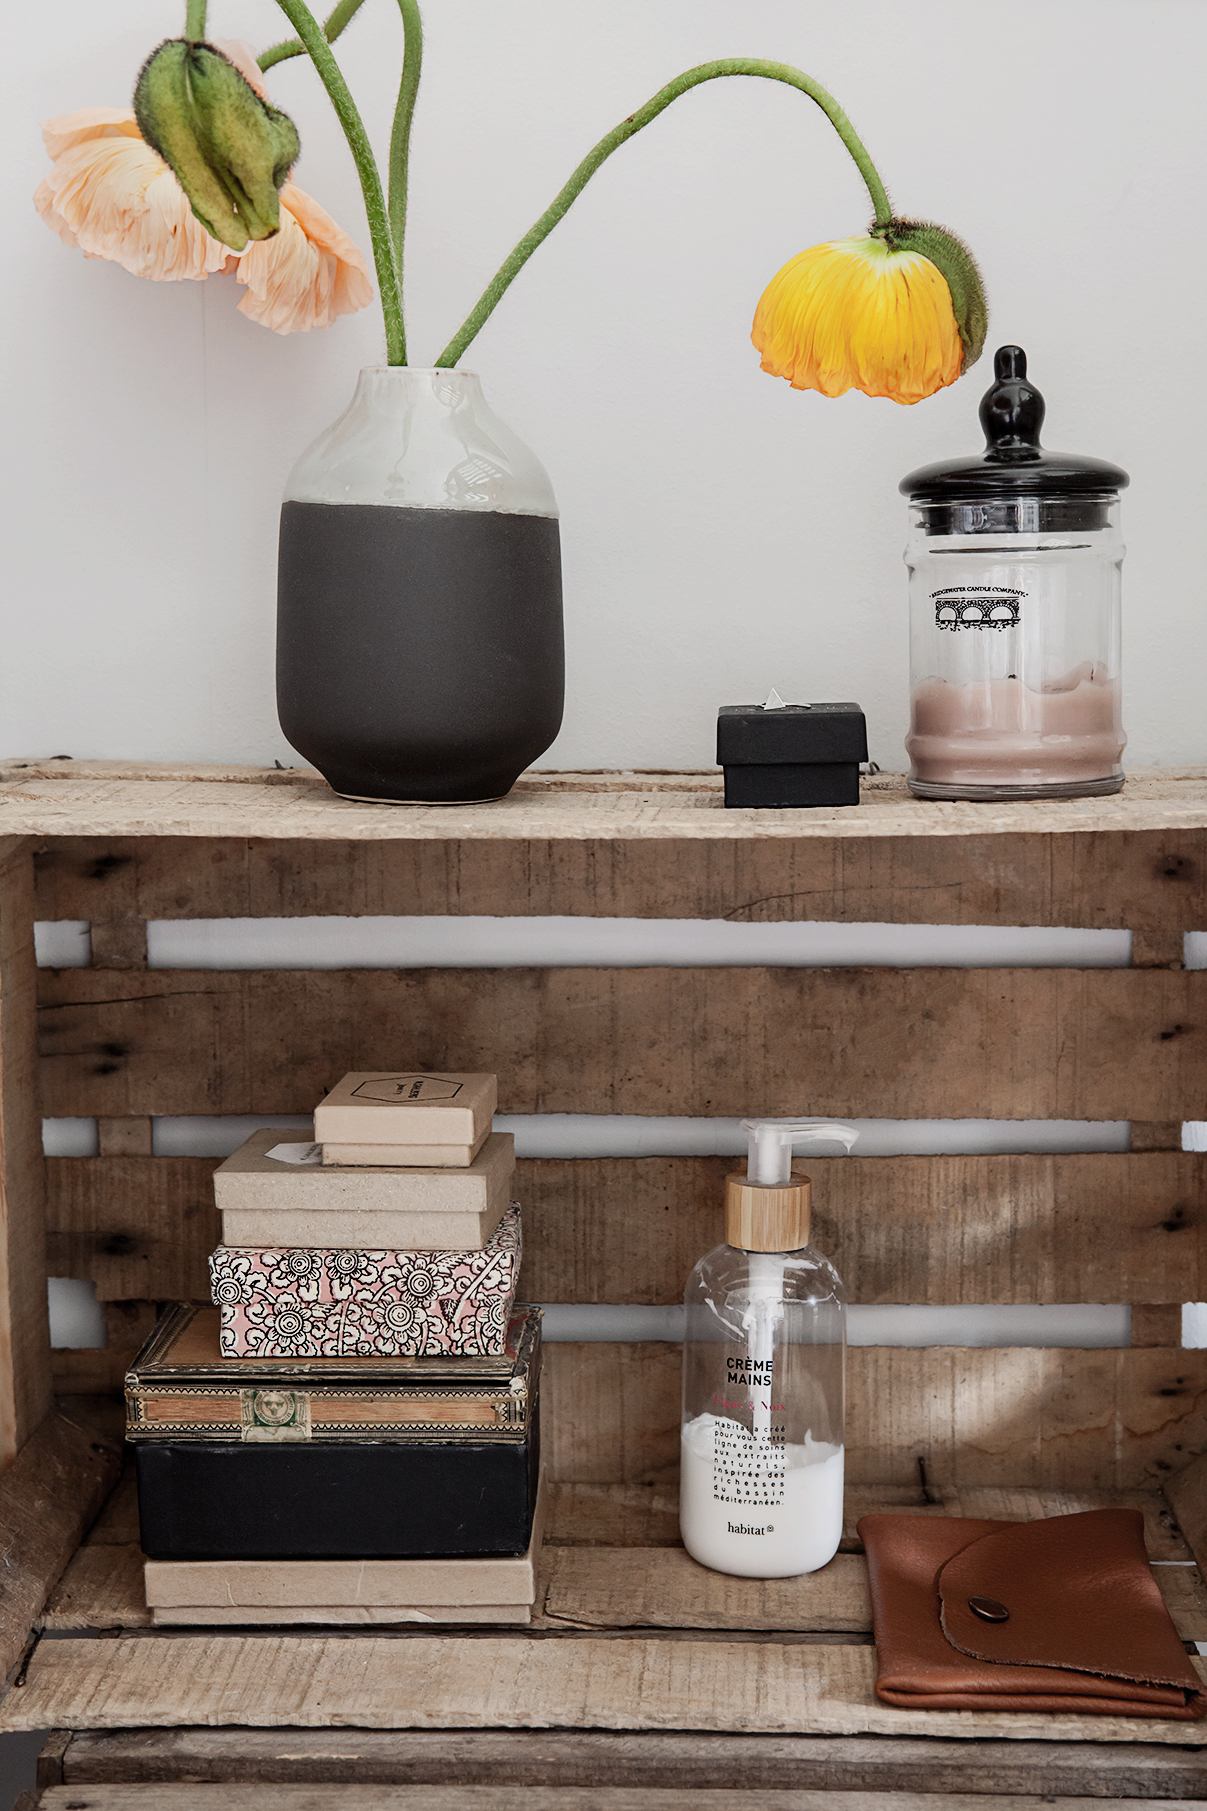 Bedside table copyright Anna Malmberg